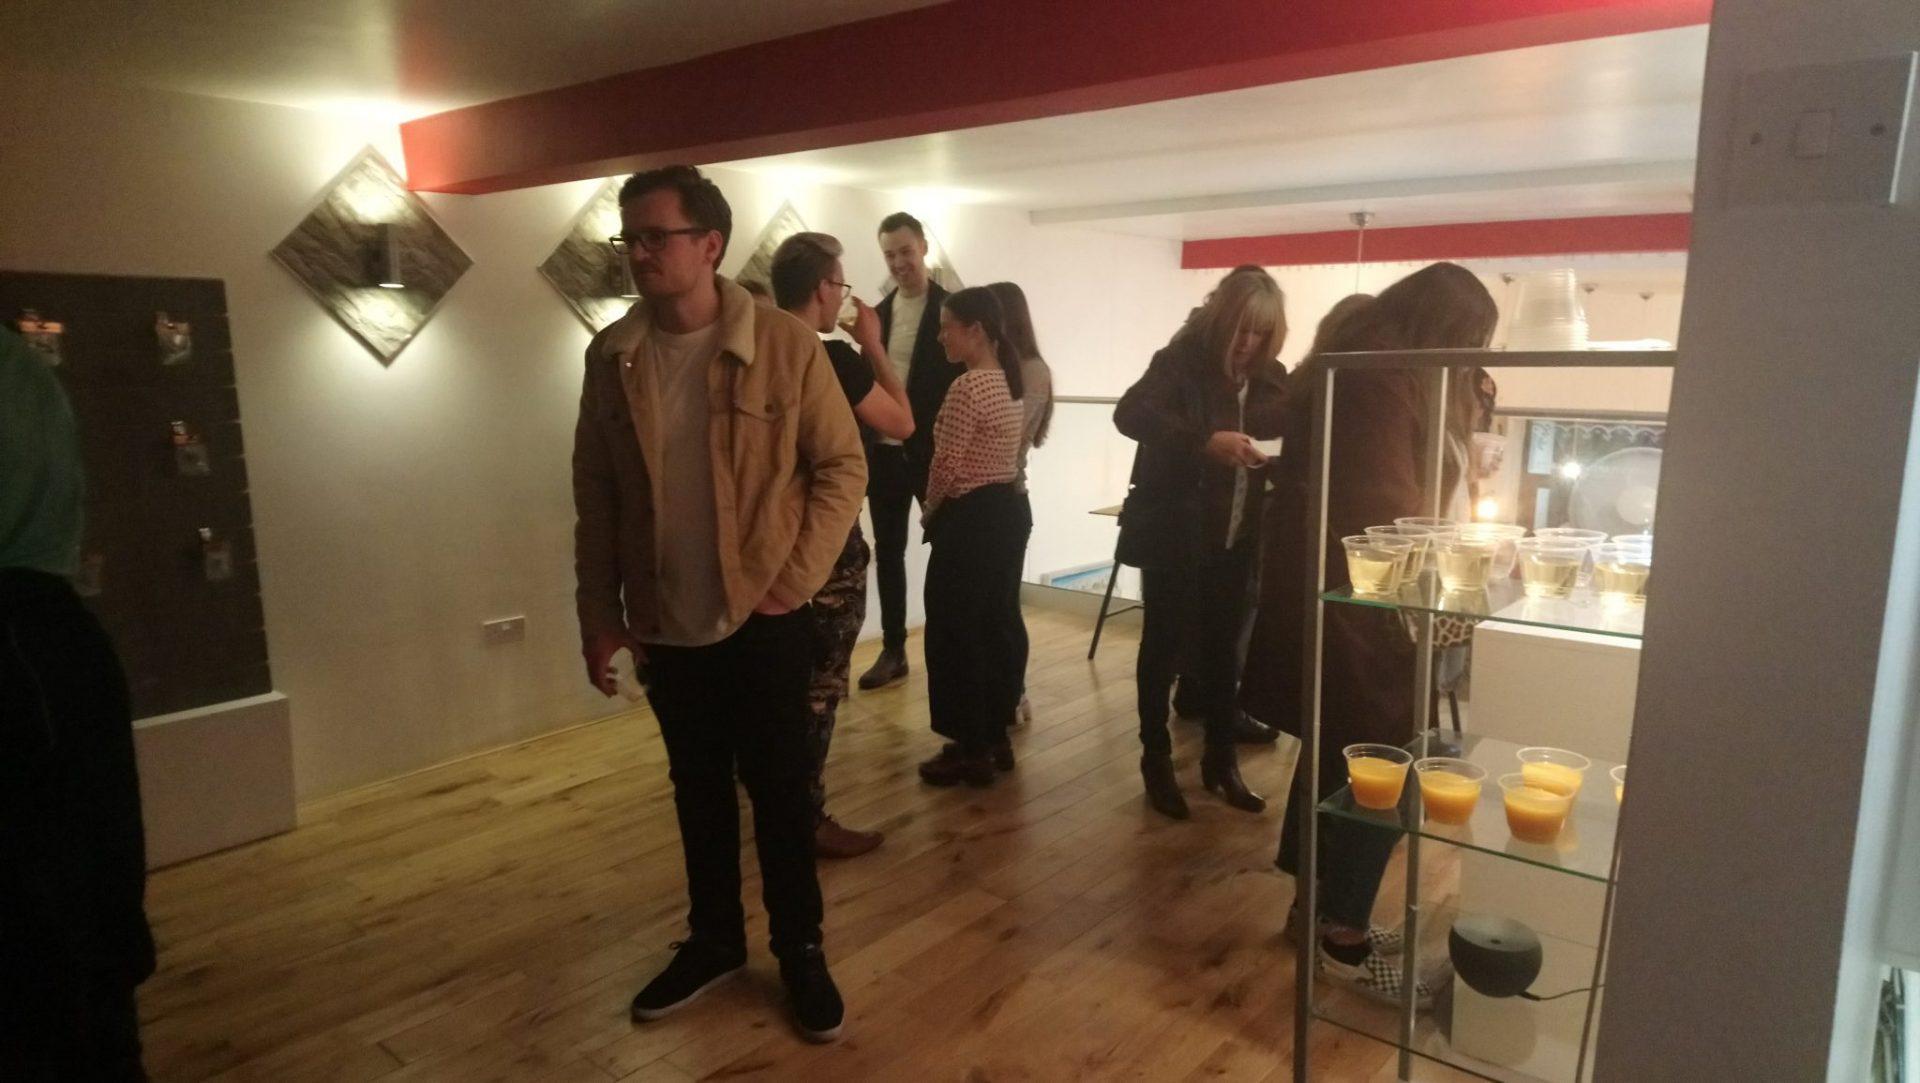 Exhibitions and event space Leeds.Our mezzanine level is available to hire for exhibitions, events and talks, on an affordable basis. Either for an hour, day or week